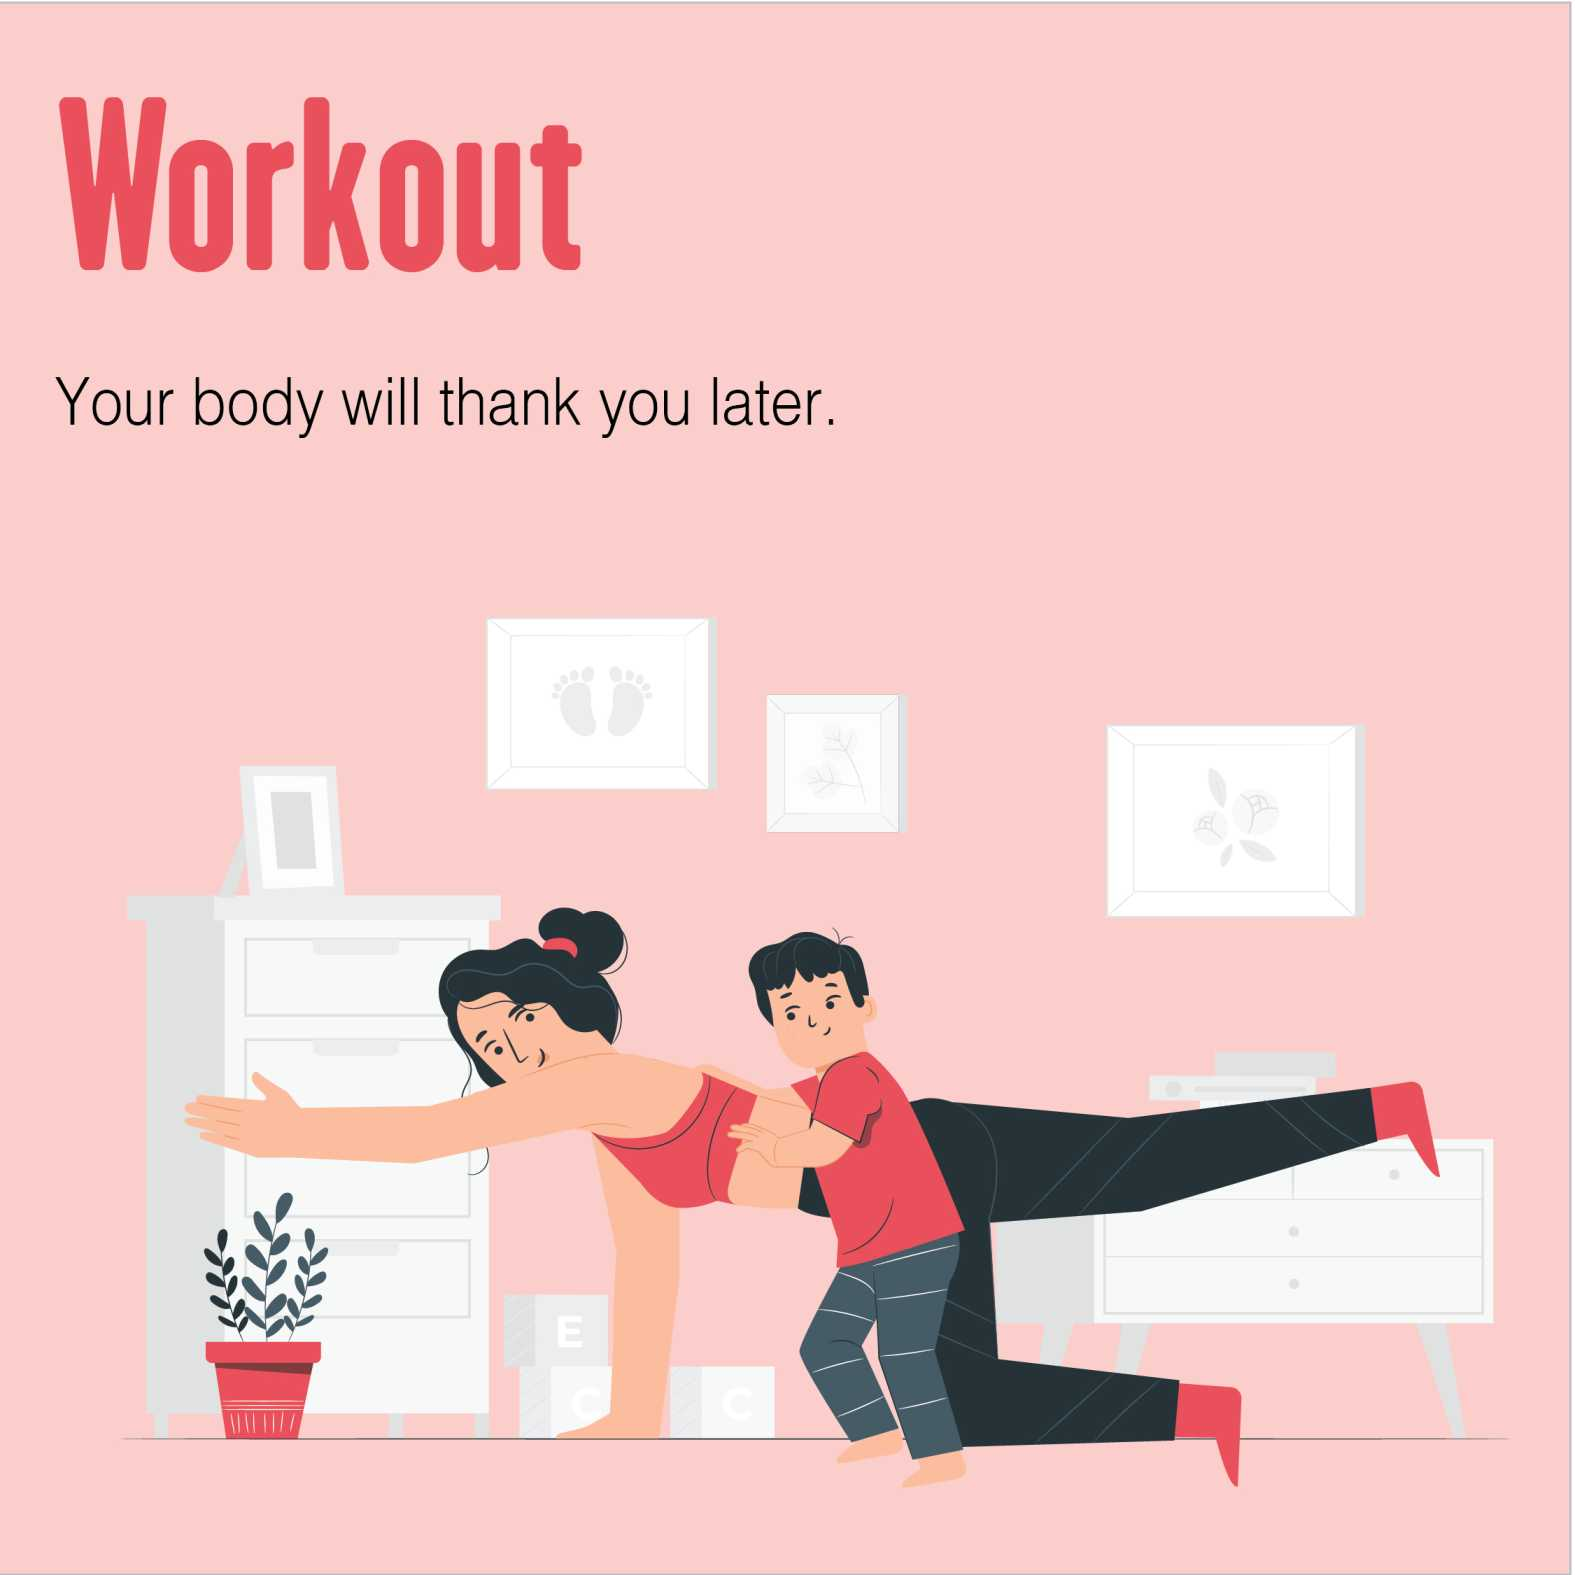 Exercise and workout